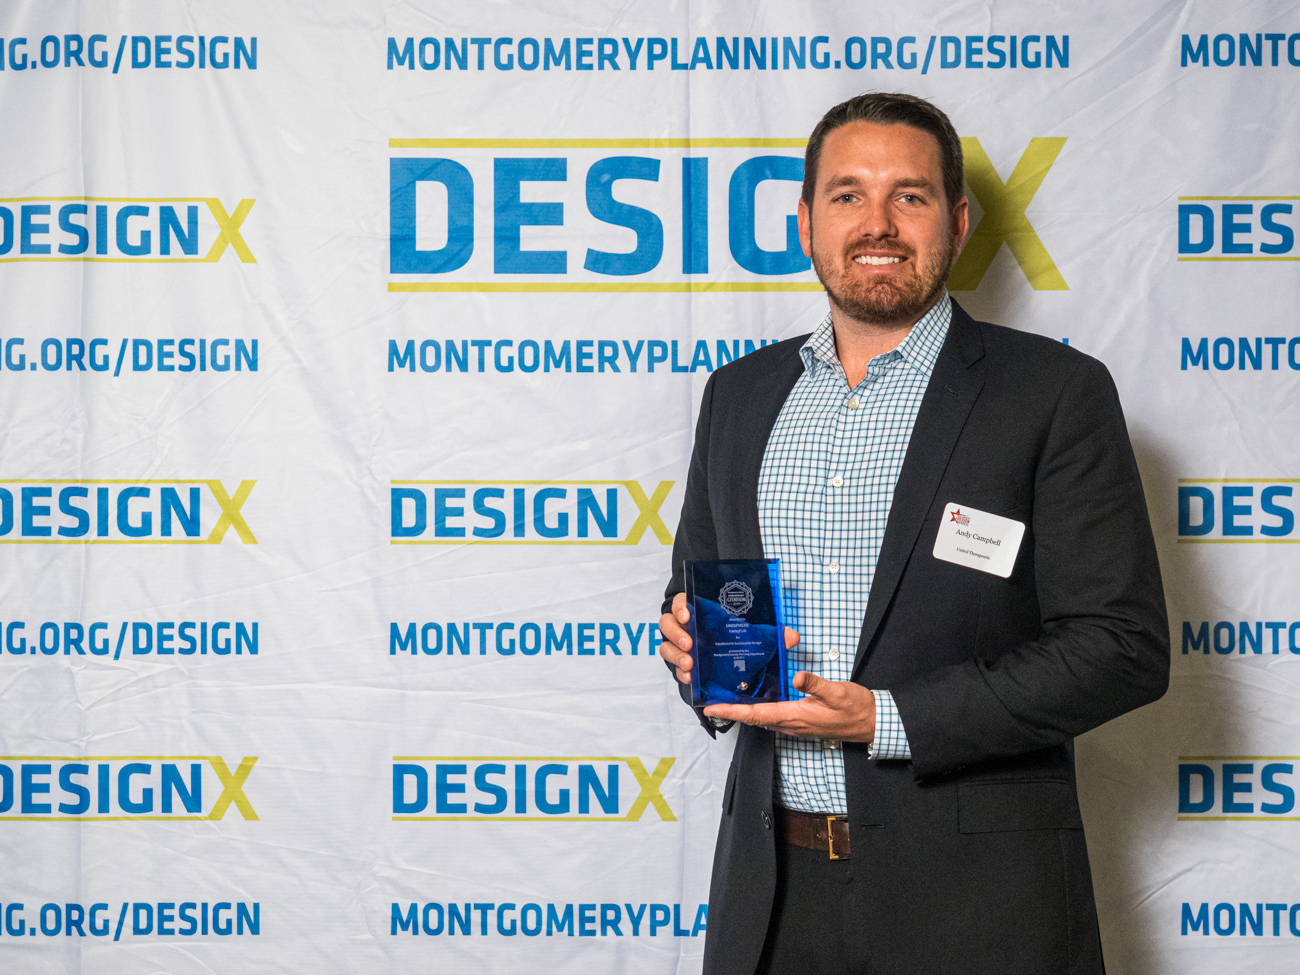 2019 Design Excellence Award Jury Citation winner